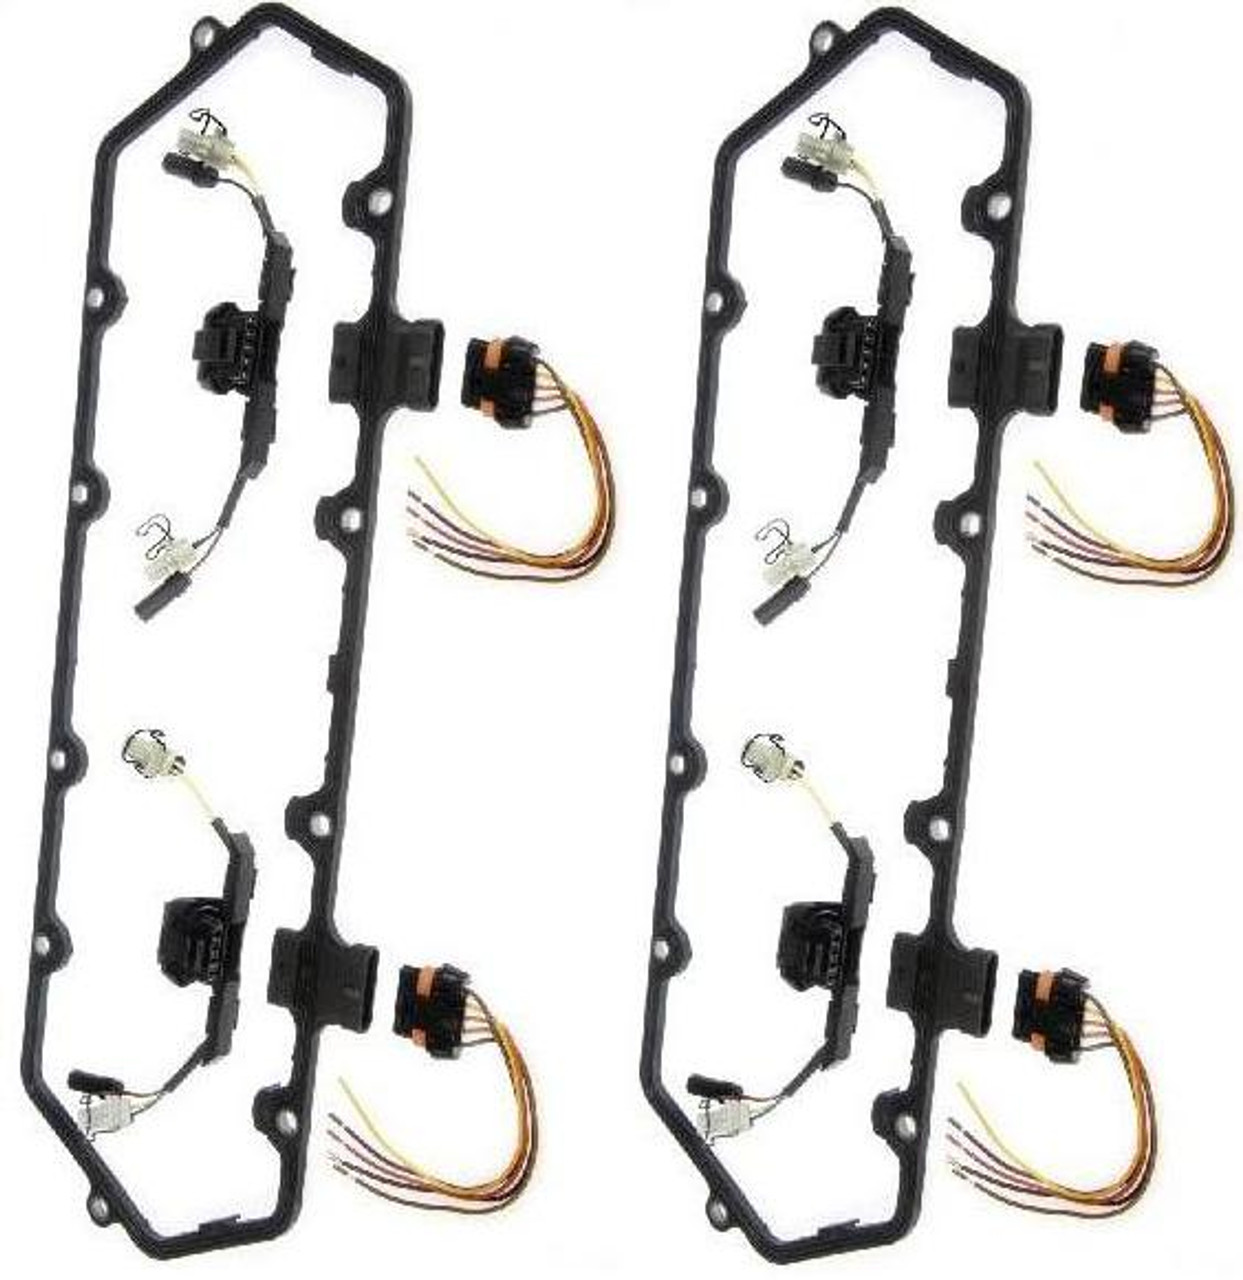 615_202_DUALvalve_cover_gasket_71029.1363116372.1280__91177.1363281390?c=2 dorman 94 97 ford dual valve cover gasket with fuel injector fuel injection wiring harness at bakdesigns.co